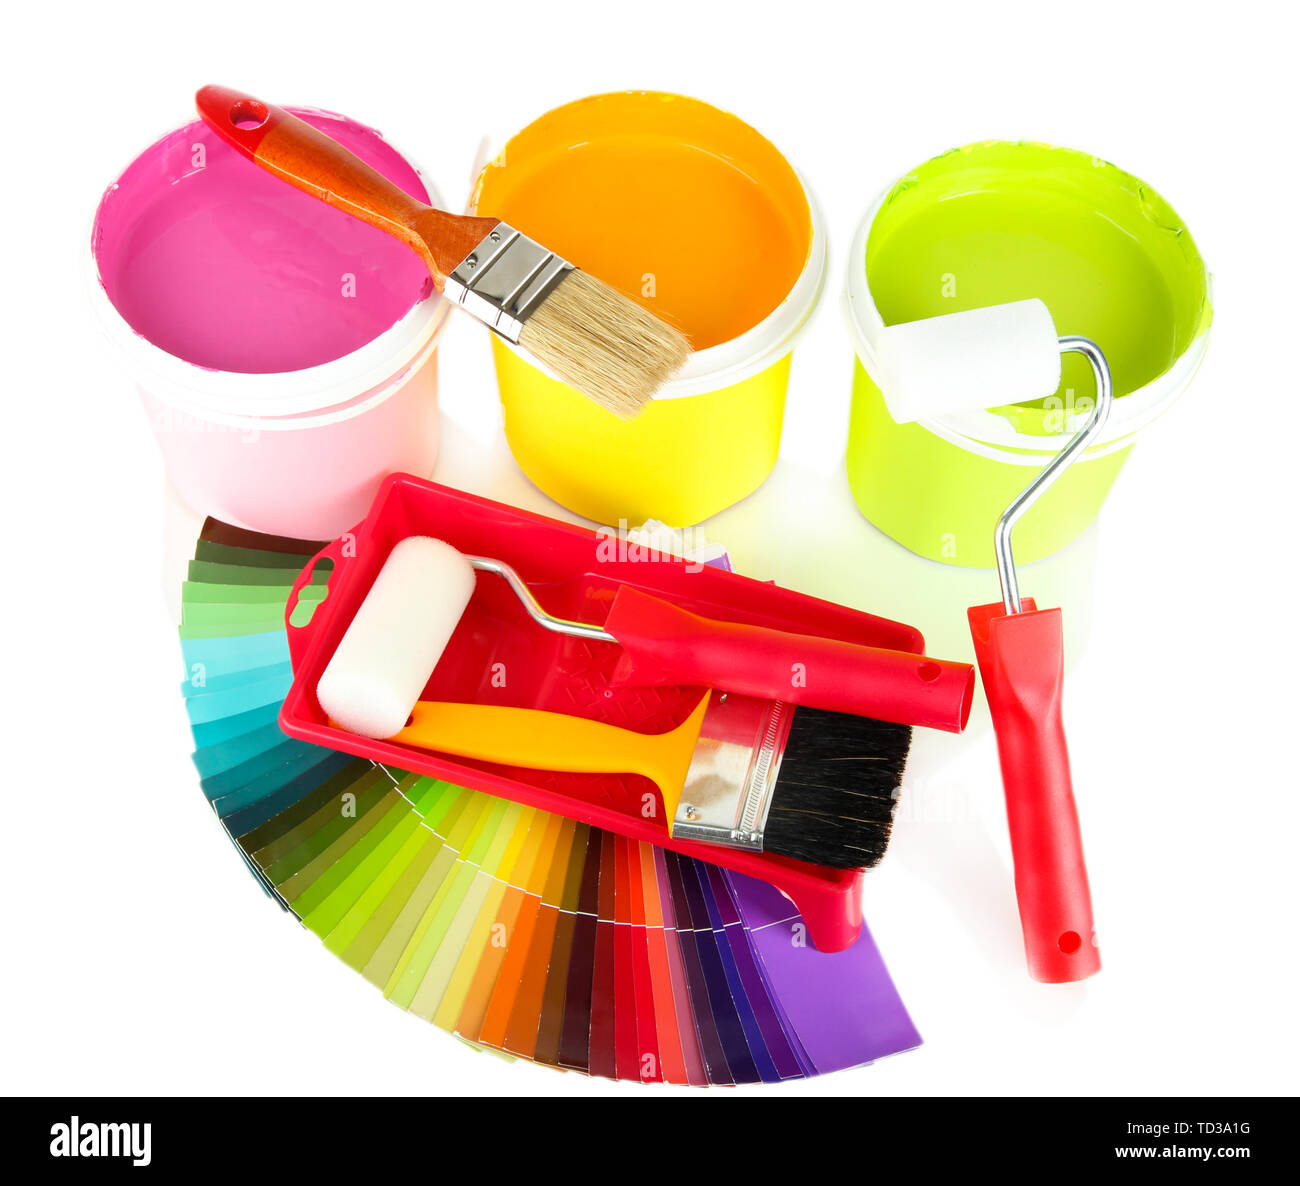 Set for painting: paint pots, brushes, paint-roller and palette of colors isolated on white - Stock Image